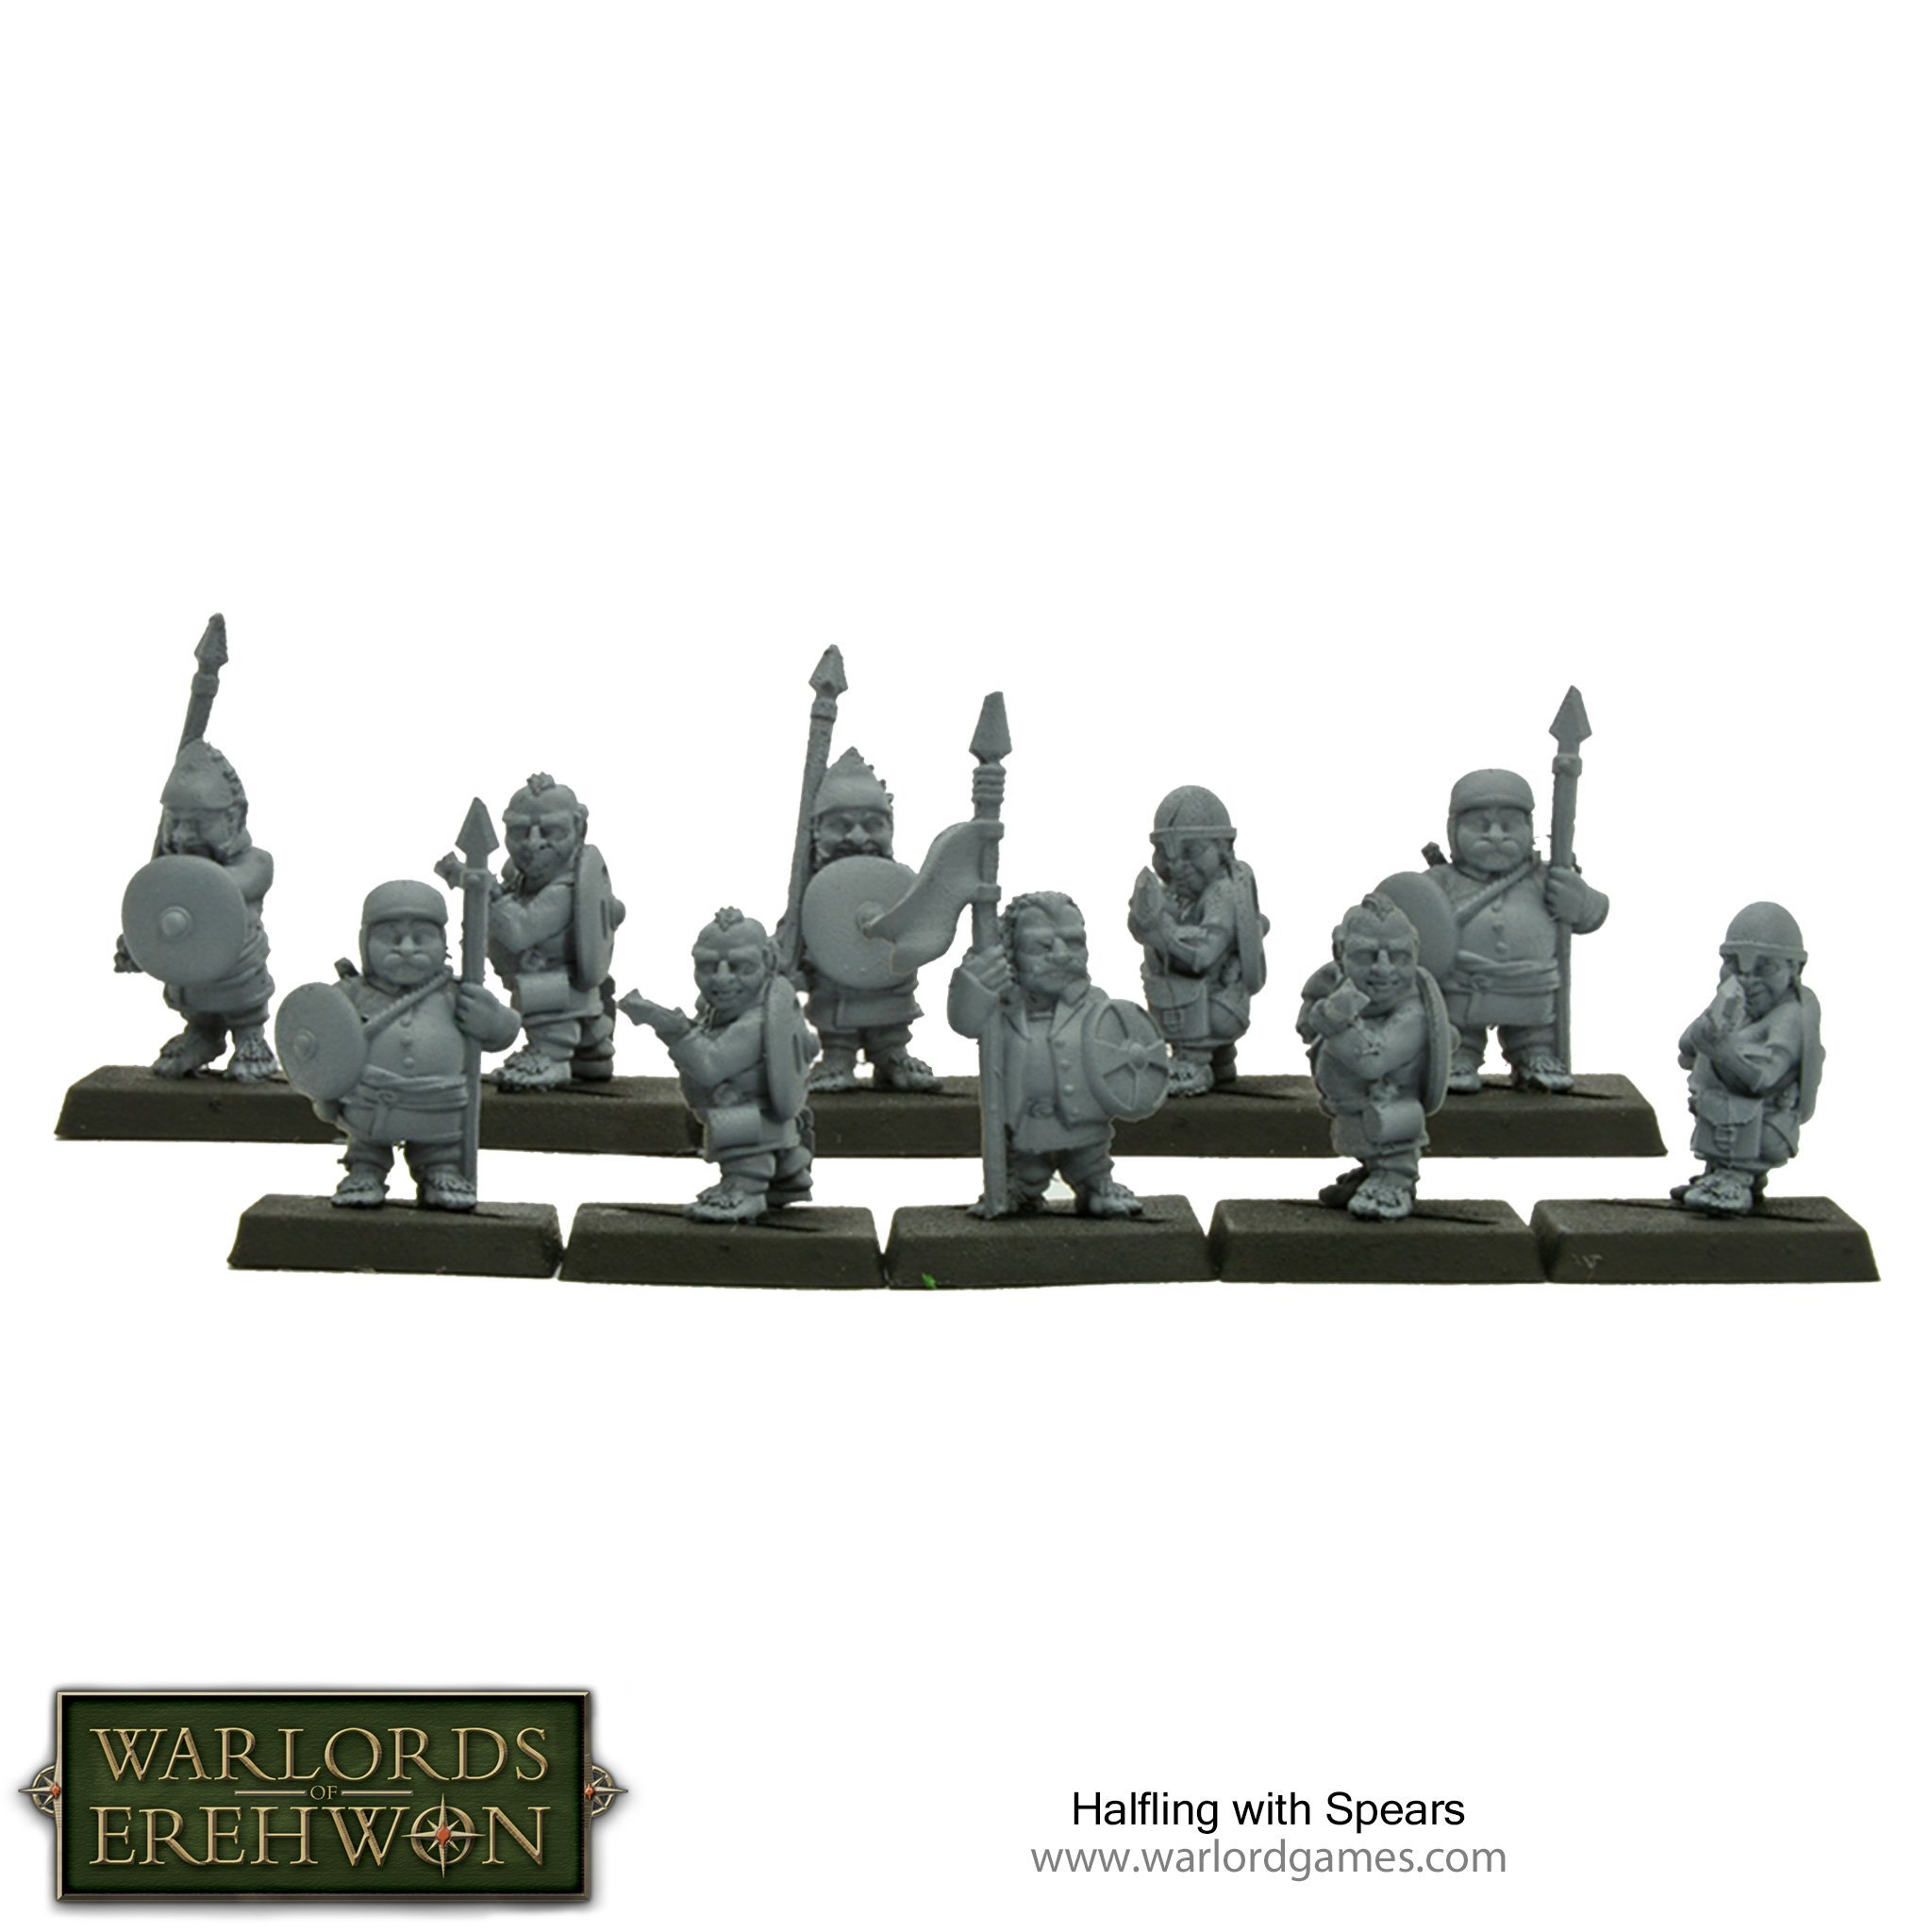 Warlords of Erehwon: Halflings with Spears